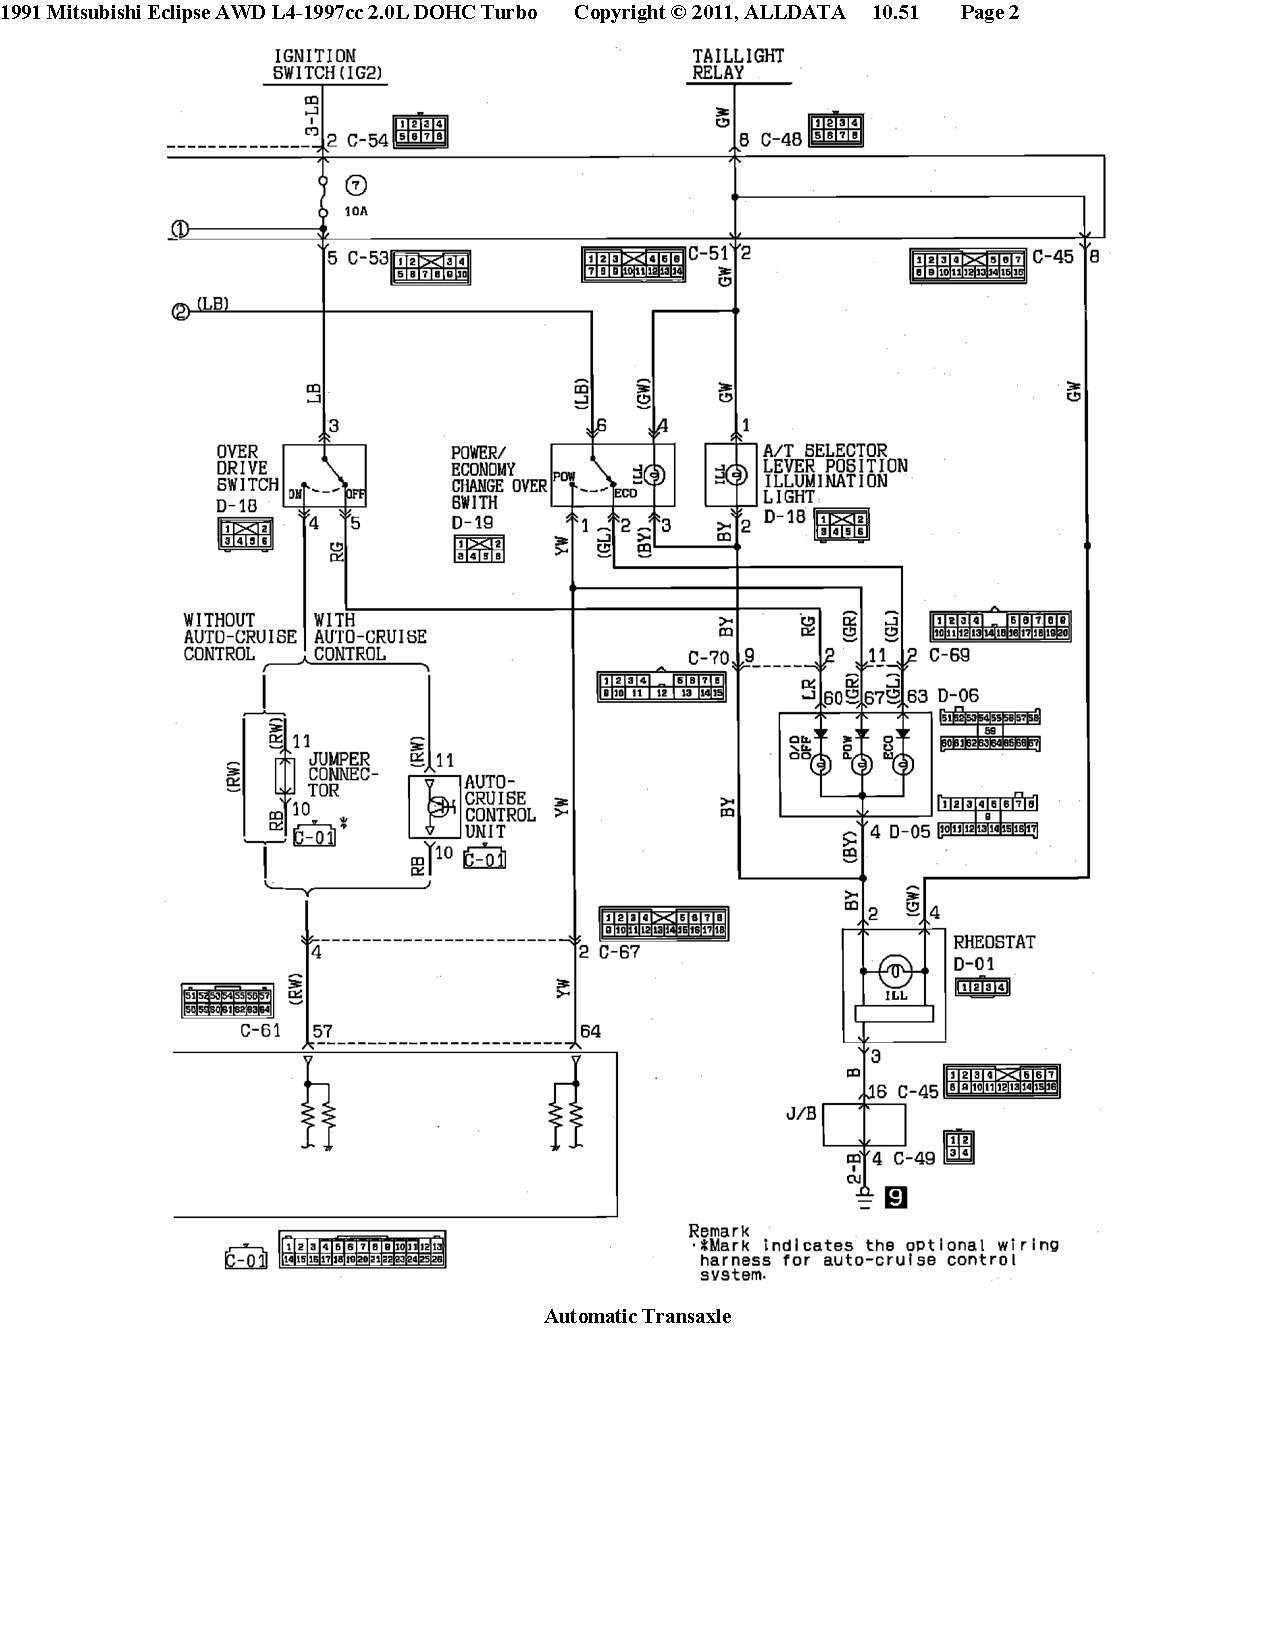 hight resolution of kawasaki kdx200 wiring diagram mercury outboard 115 hp 1987 kdx 200 wiring diagram kdx 200 coil